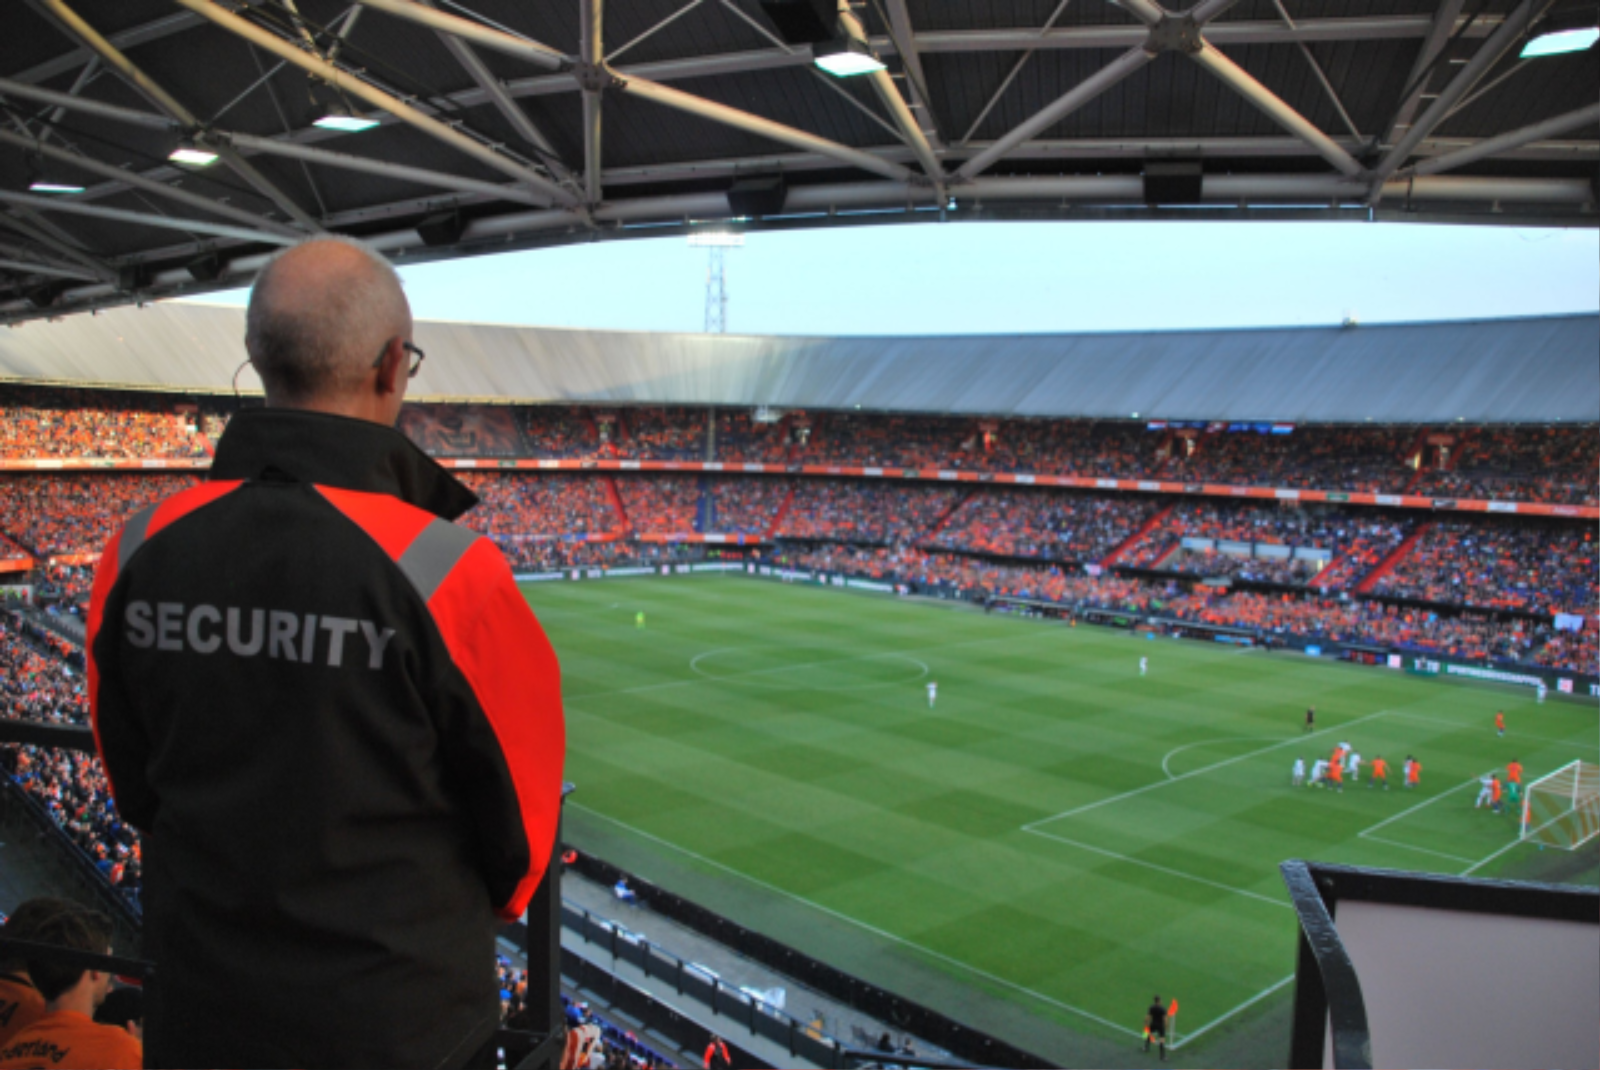 voetbalsteward - Security Management Group BV